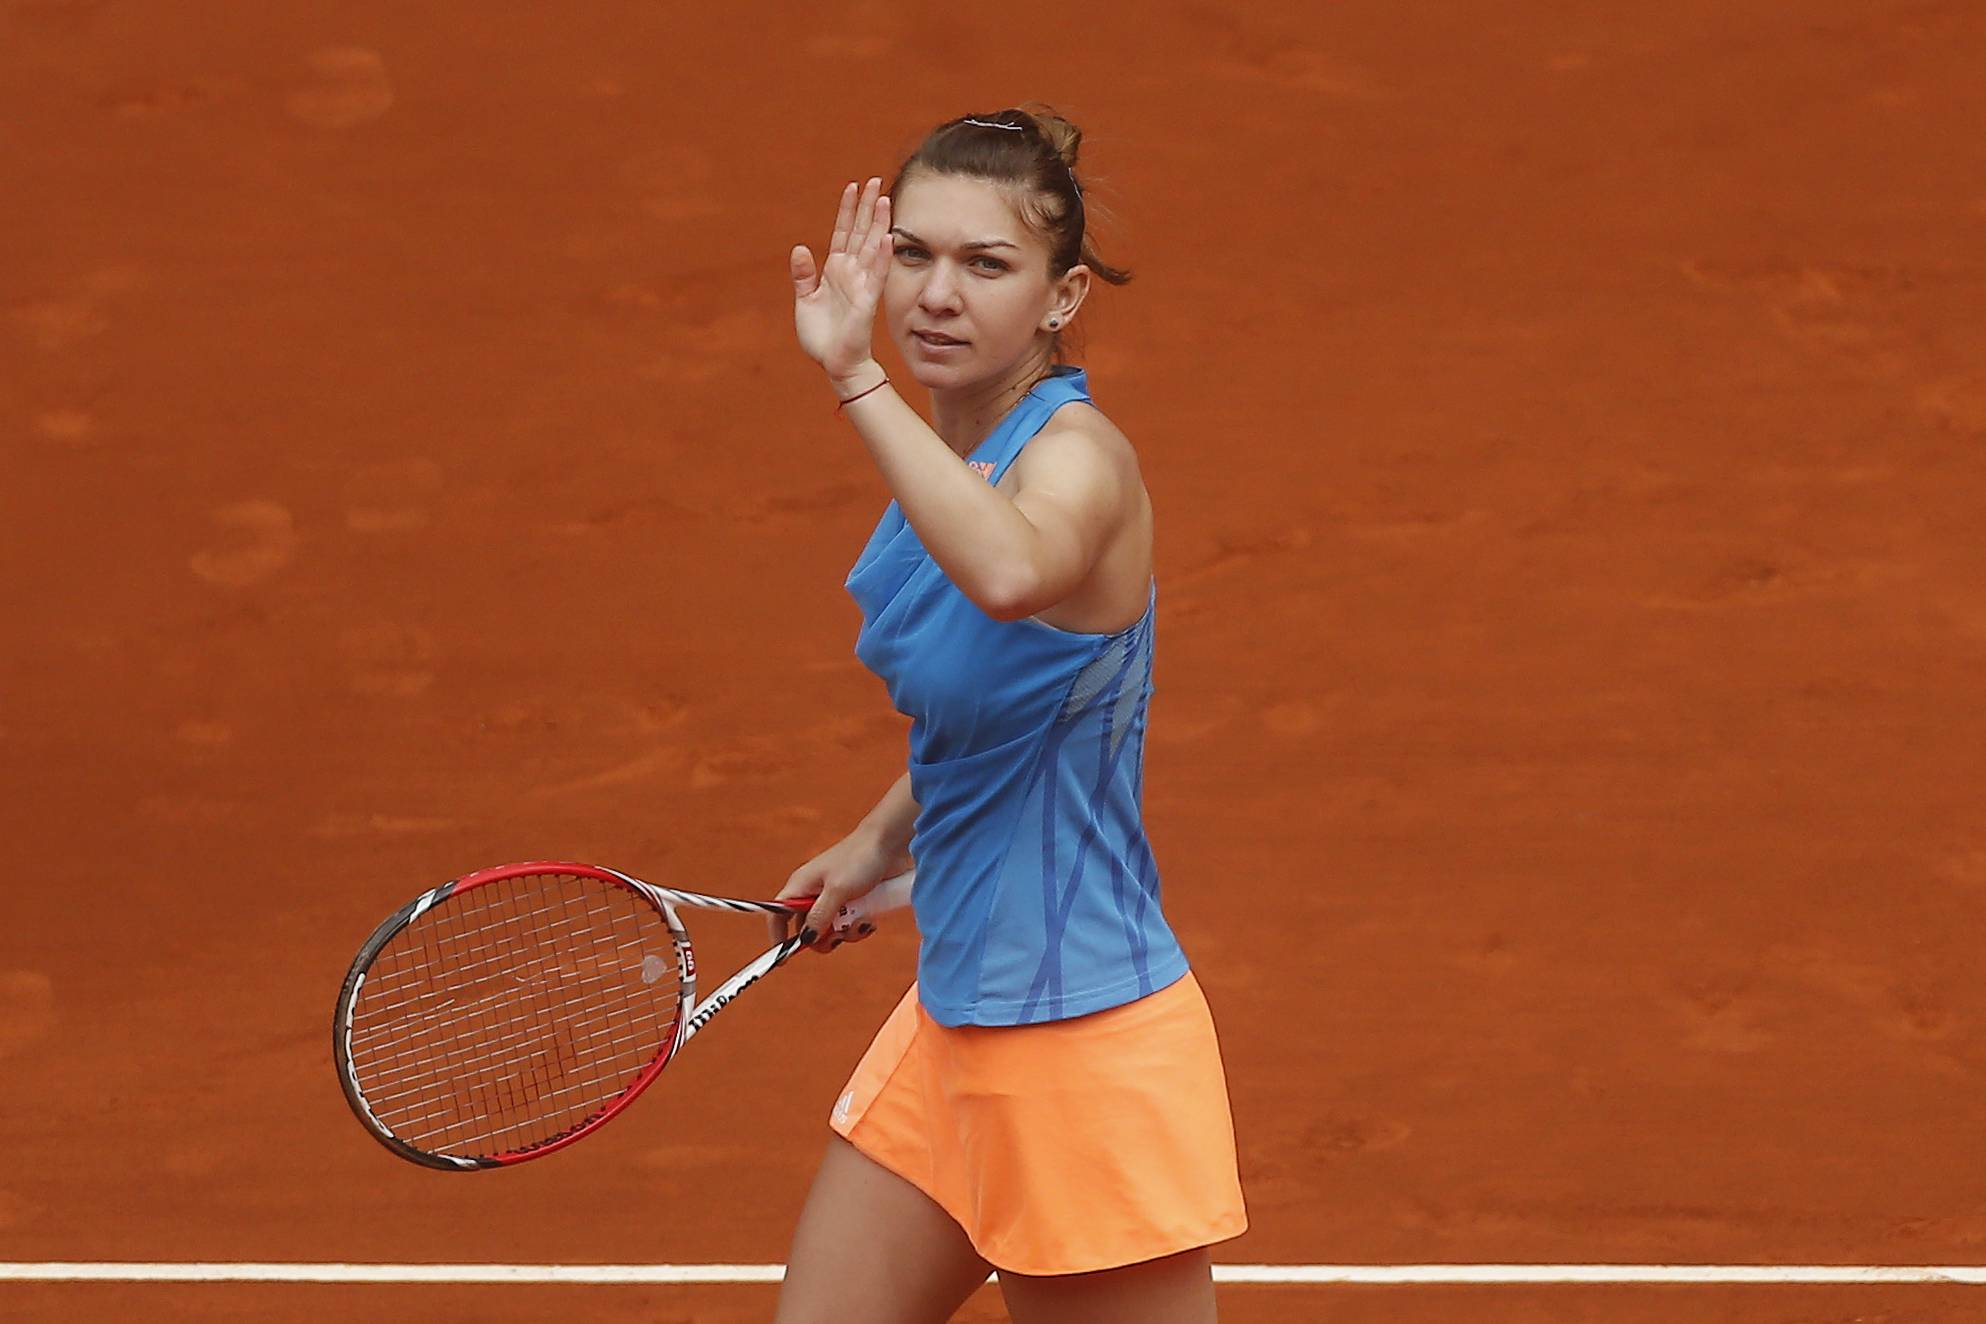 Simona Halep from Romania celebrates her victory against Lara Arruabarrena from Spain in a Madrid Open tennis tournament match in Madrid, Spain, Wednesday May 7, 2014.